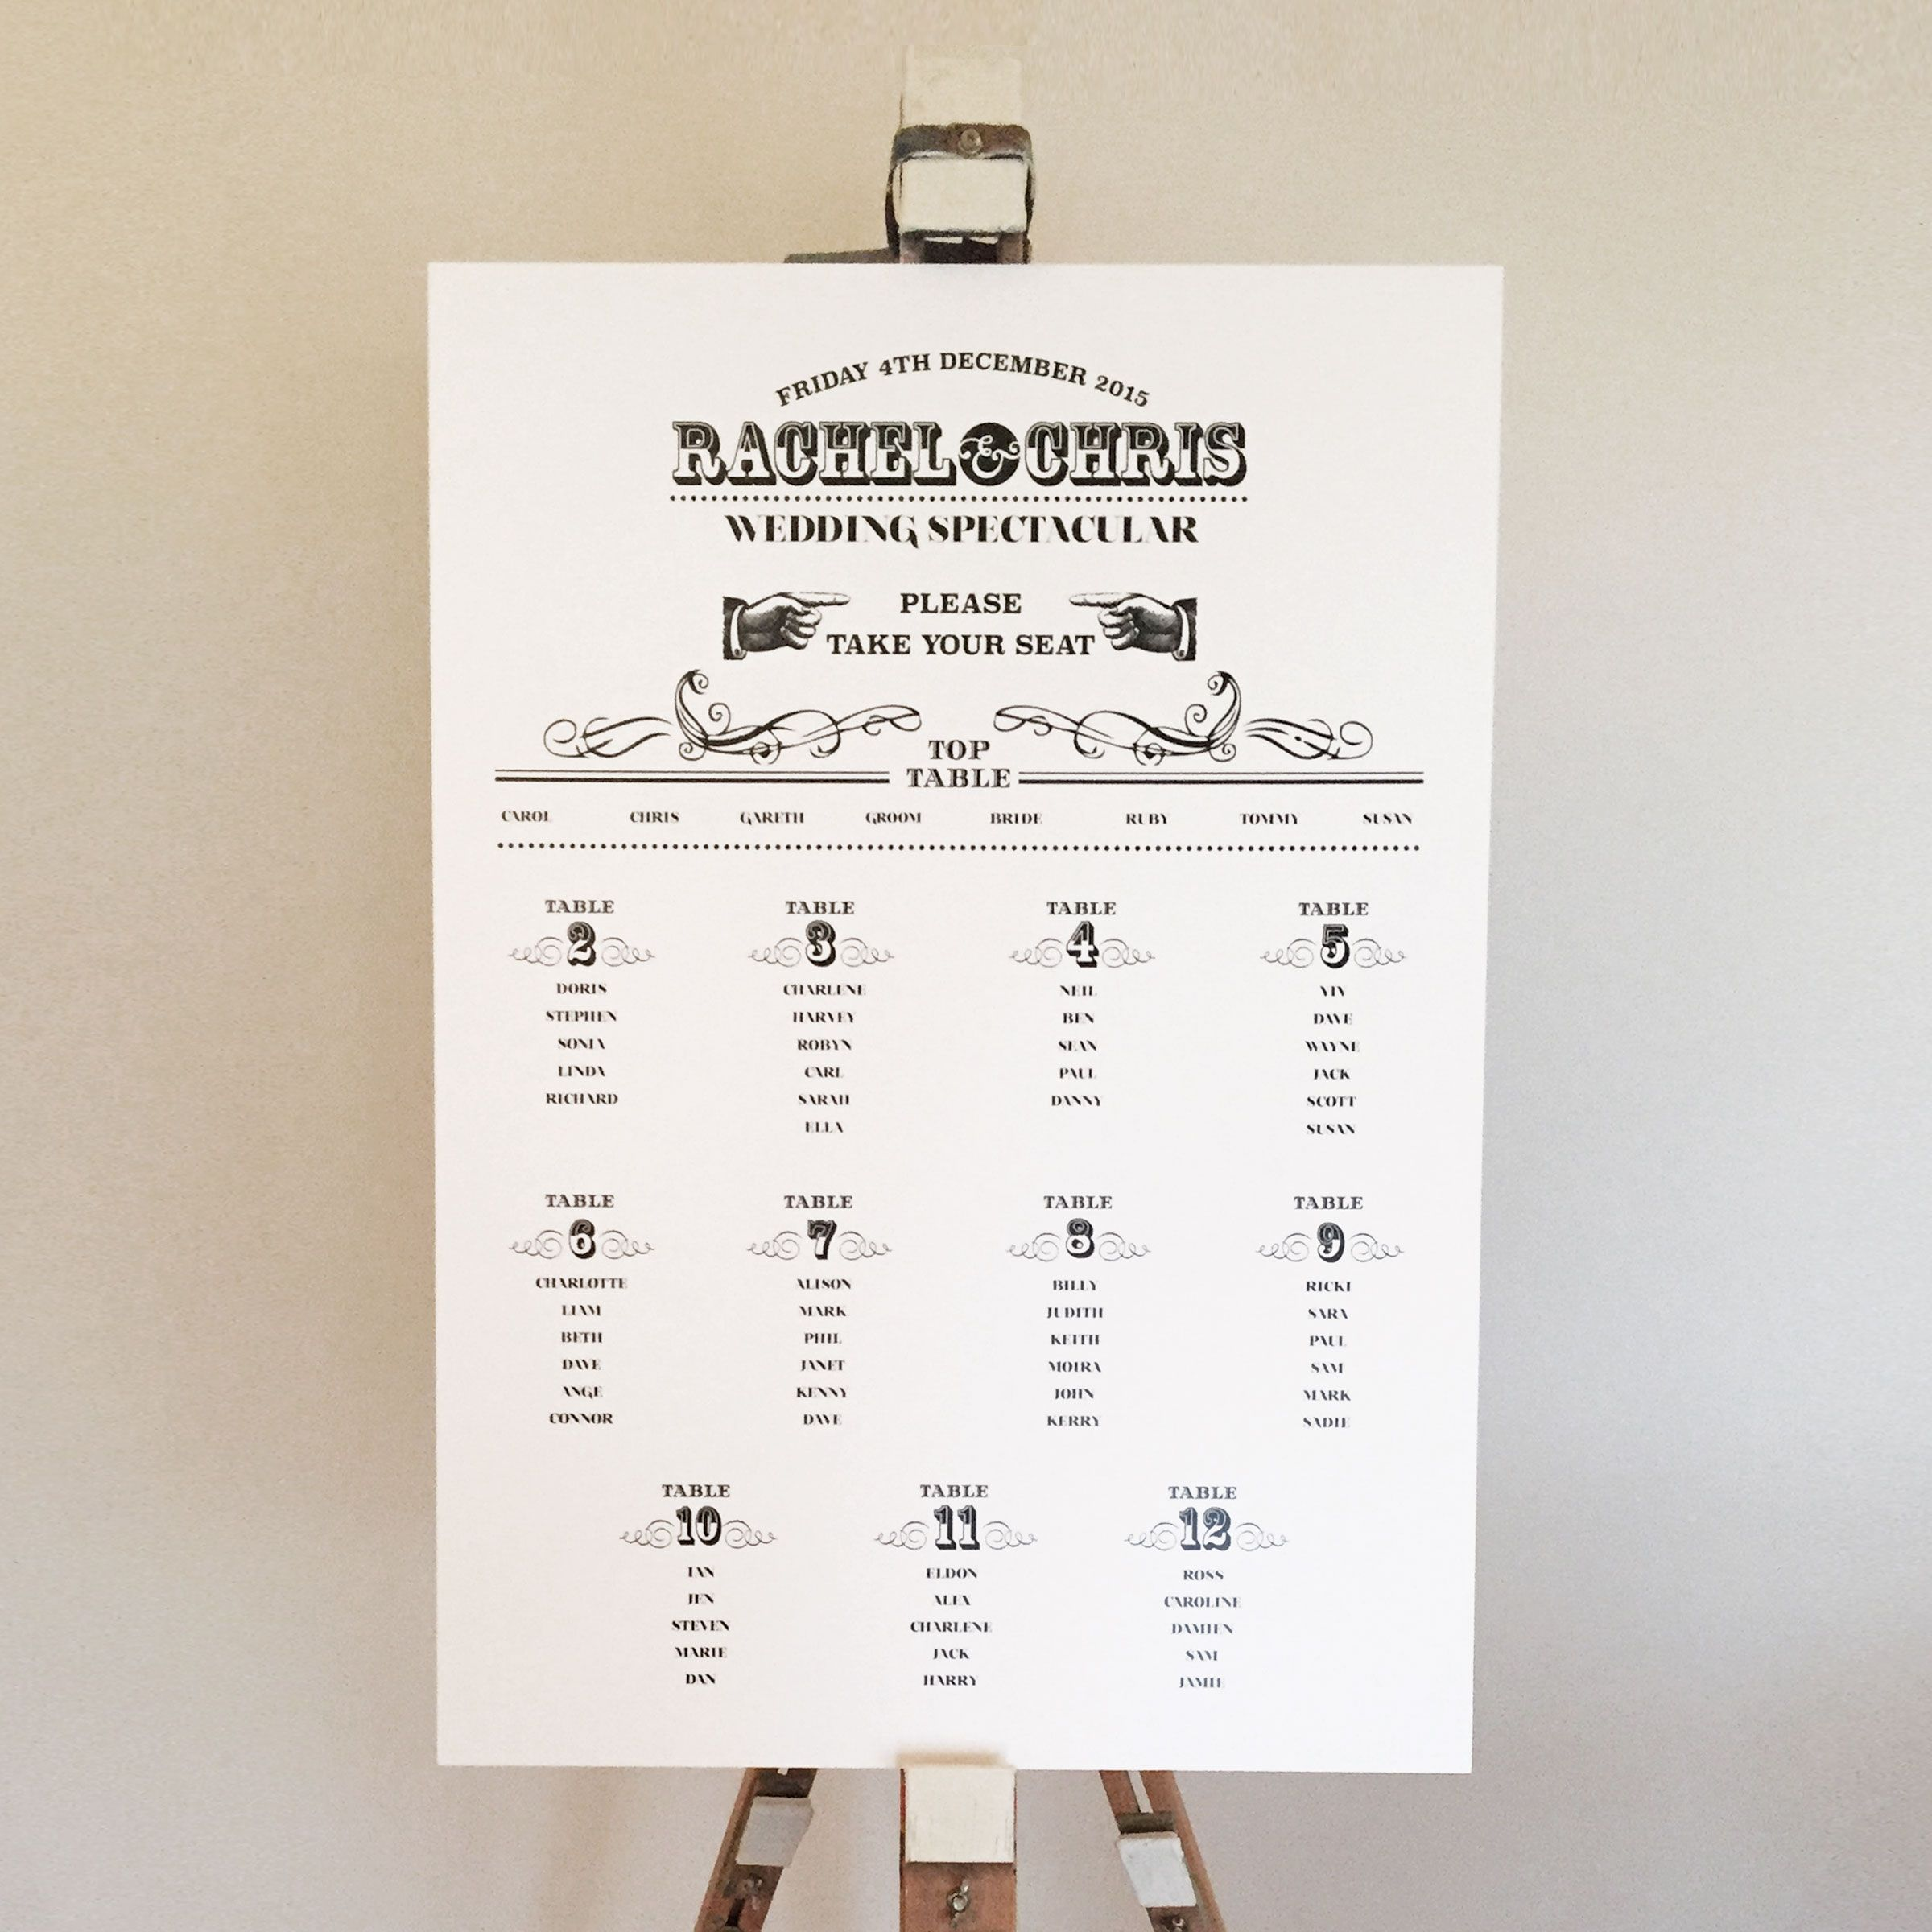 A wedding seating plan in a vintage style displayed on easel